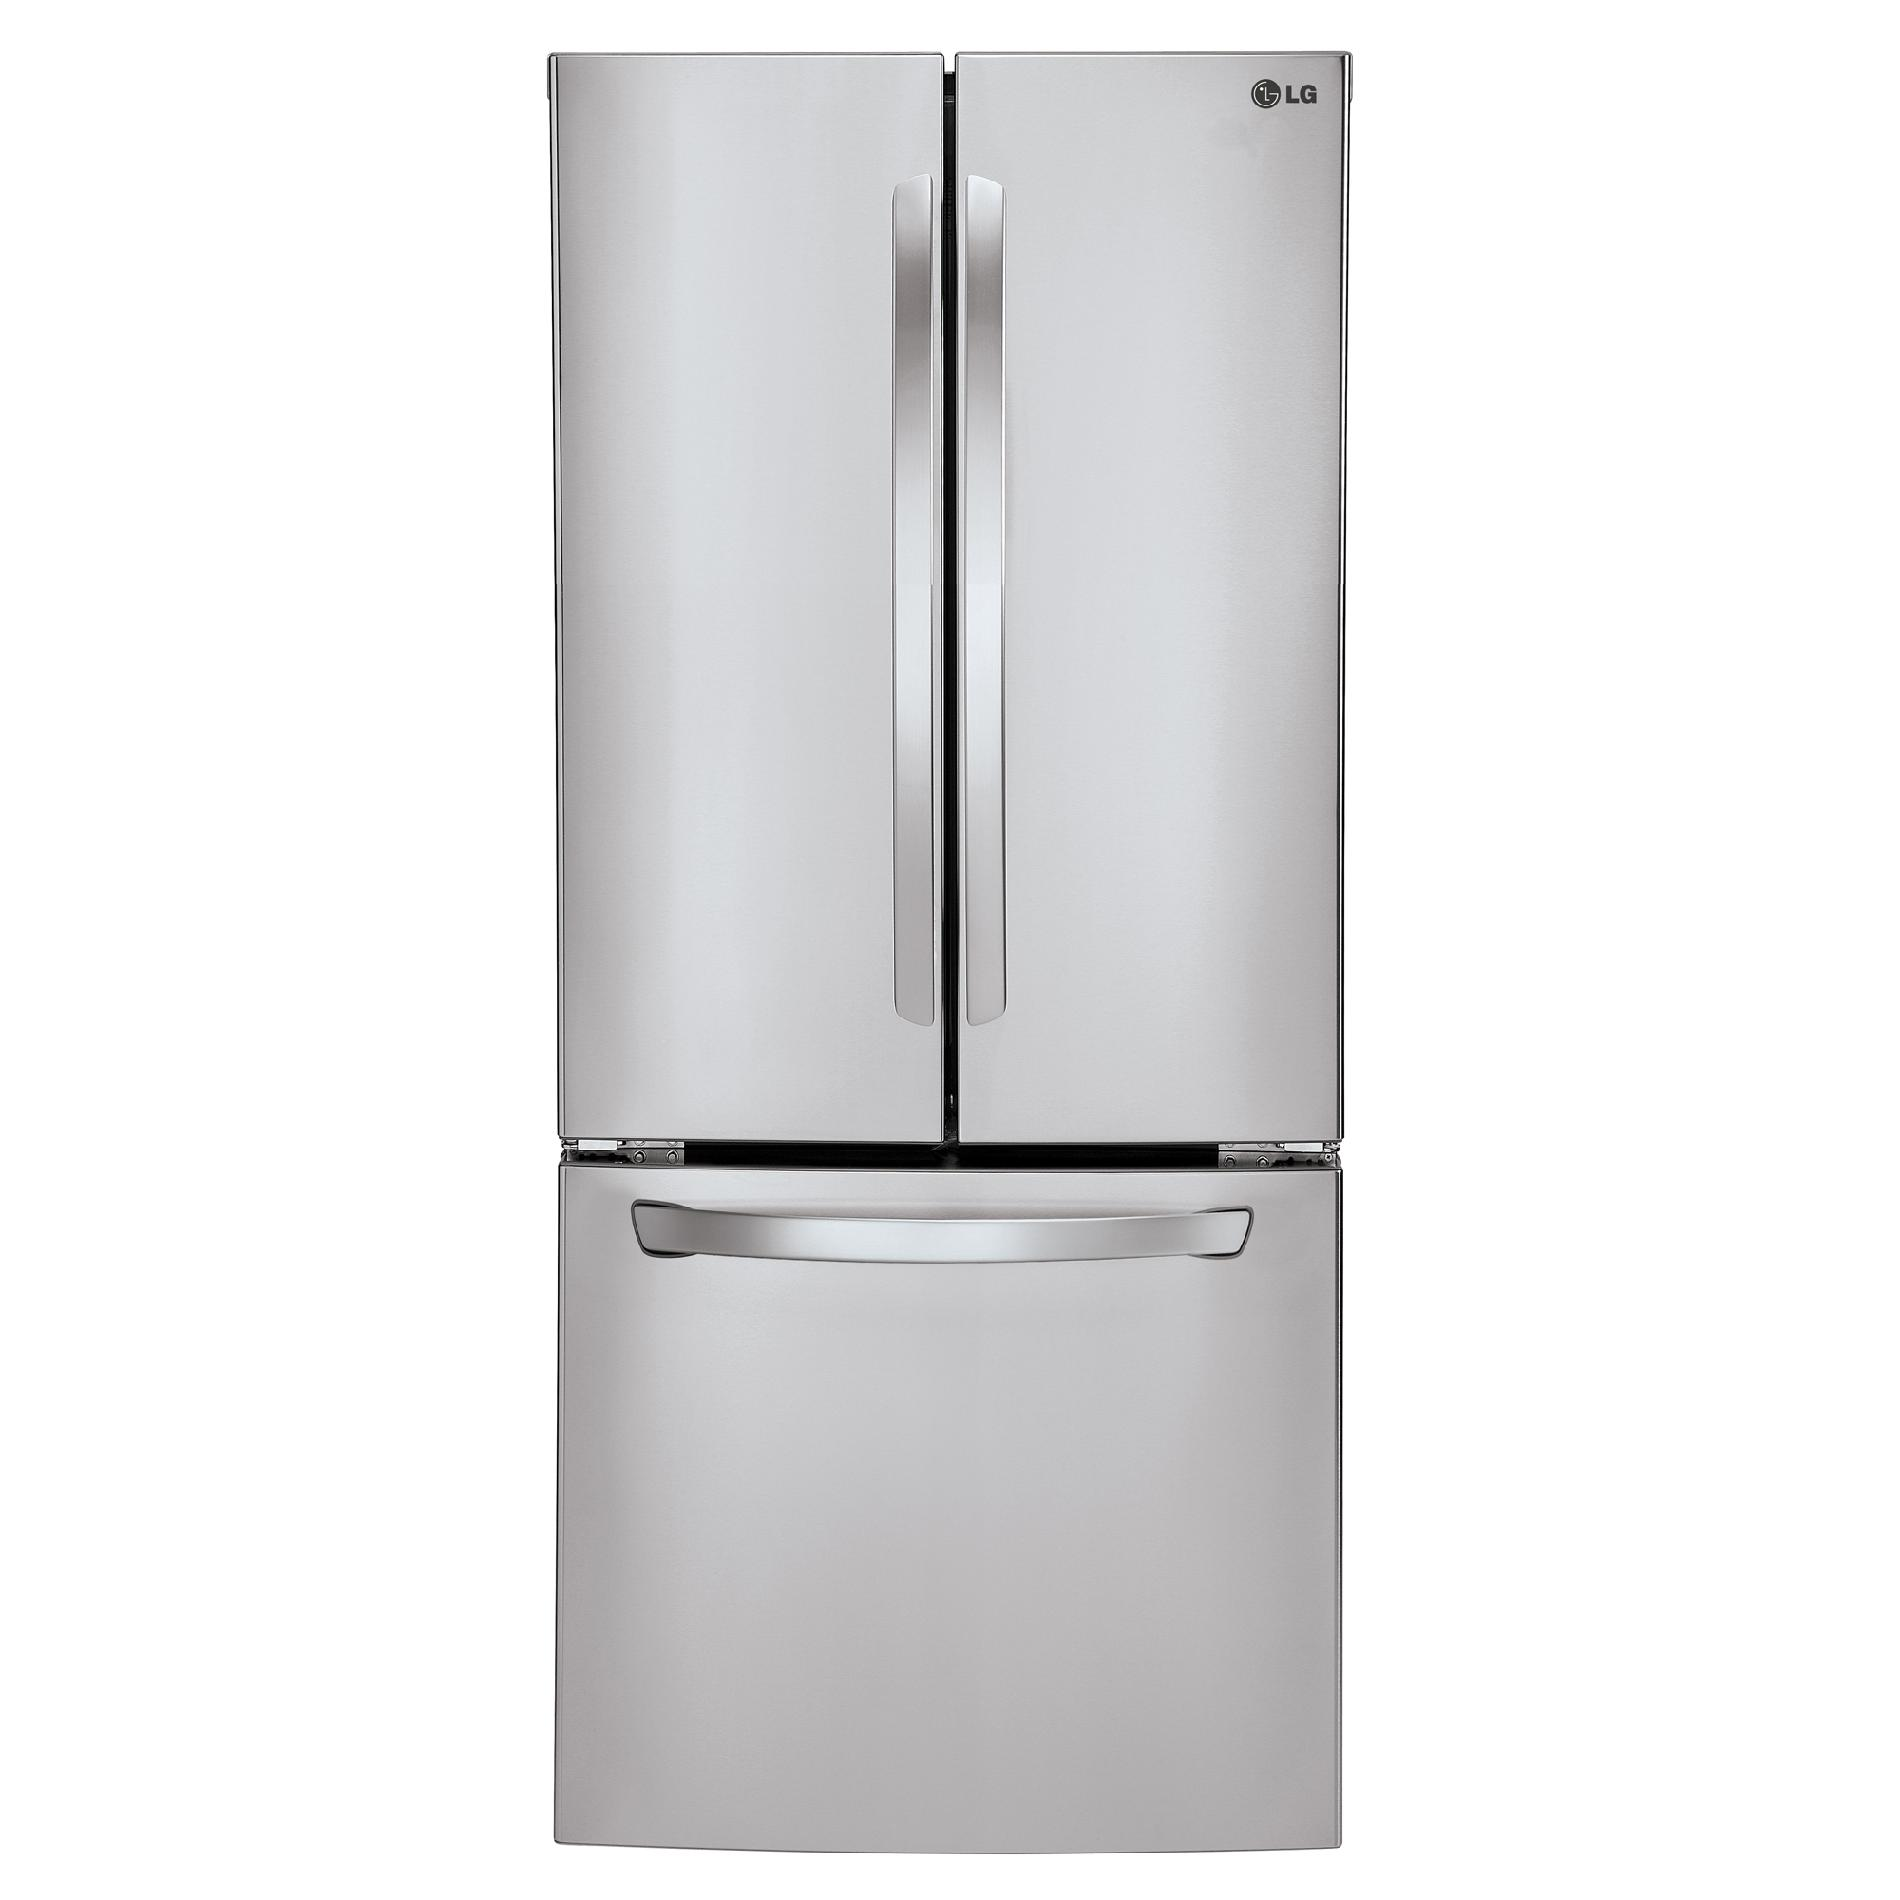 LG LFC22770ST 21.8 cu. ft. French Door Bottom-Freezer Refrigerator – Stainless Steel